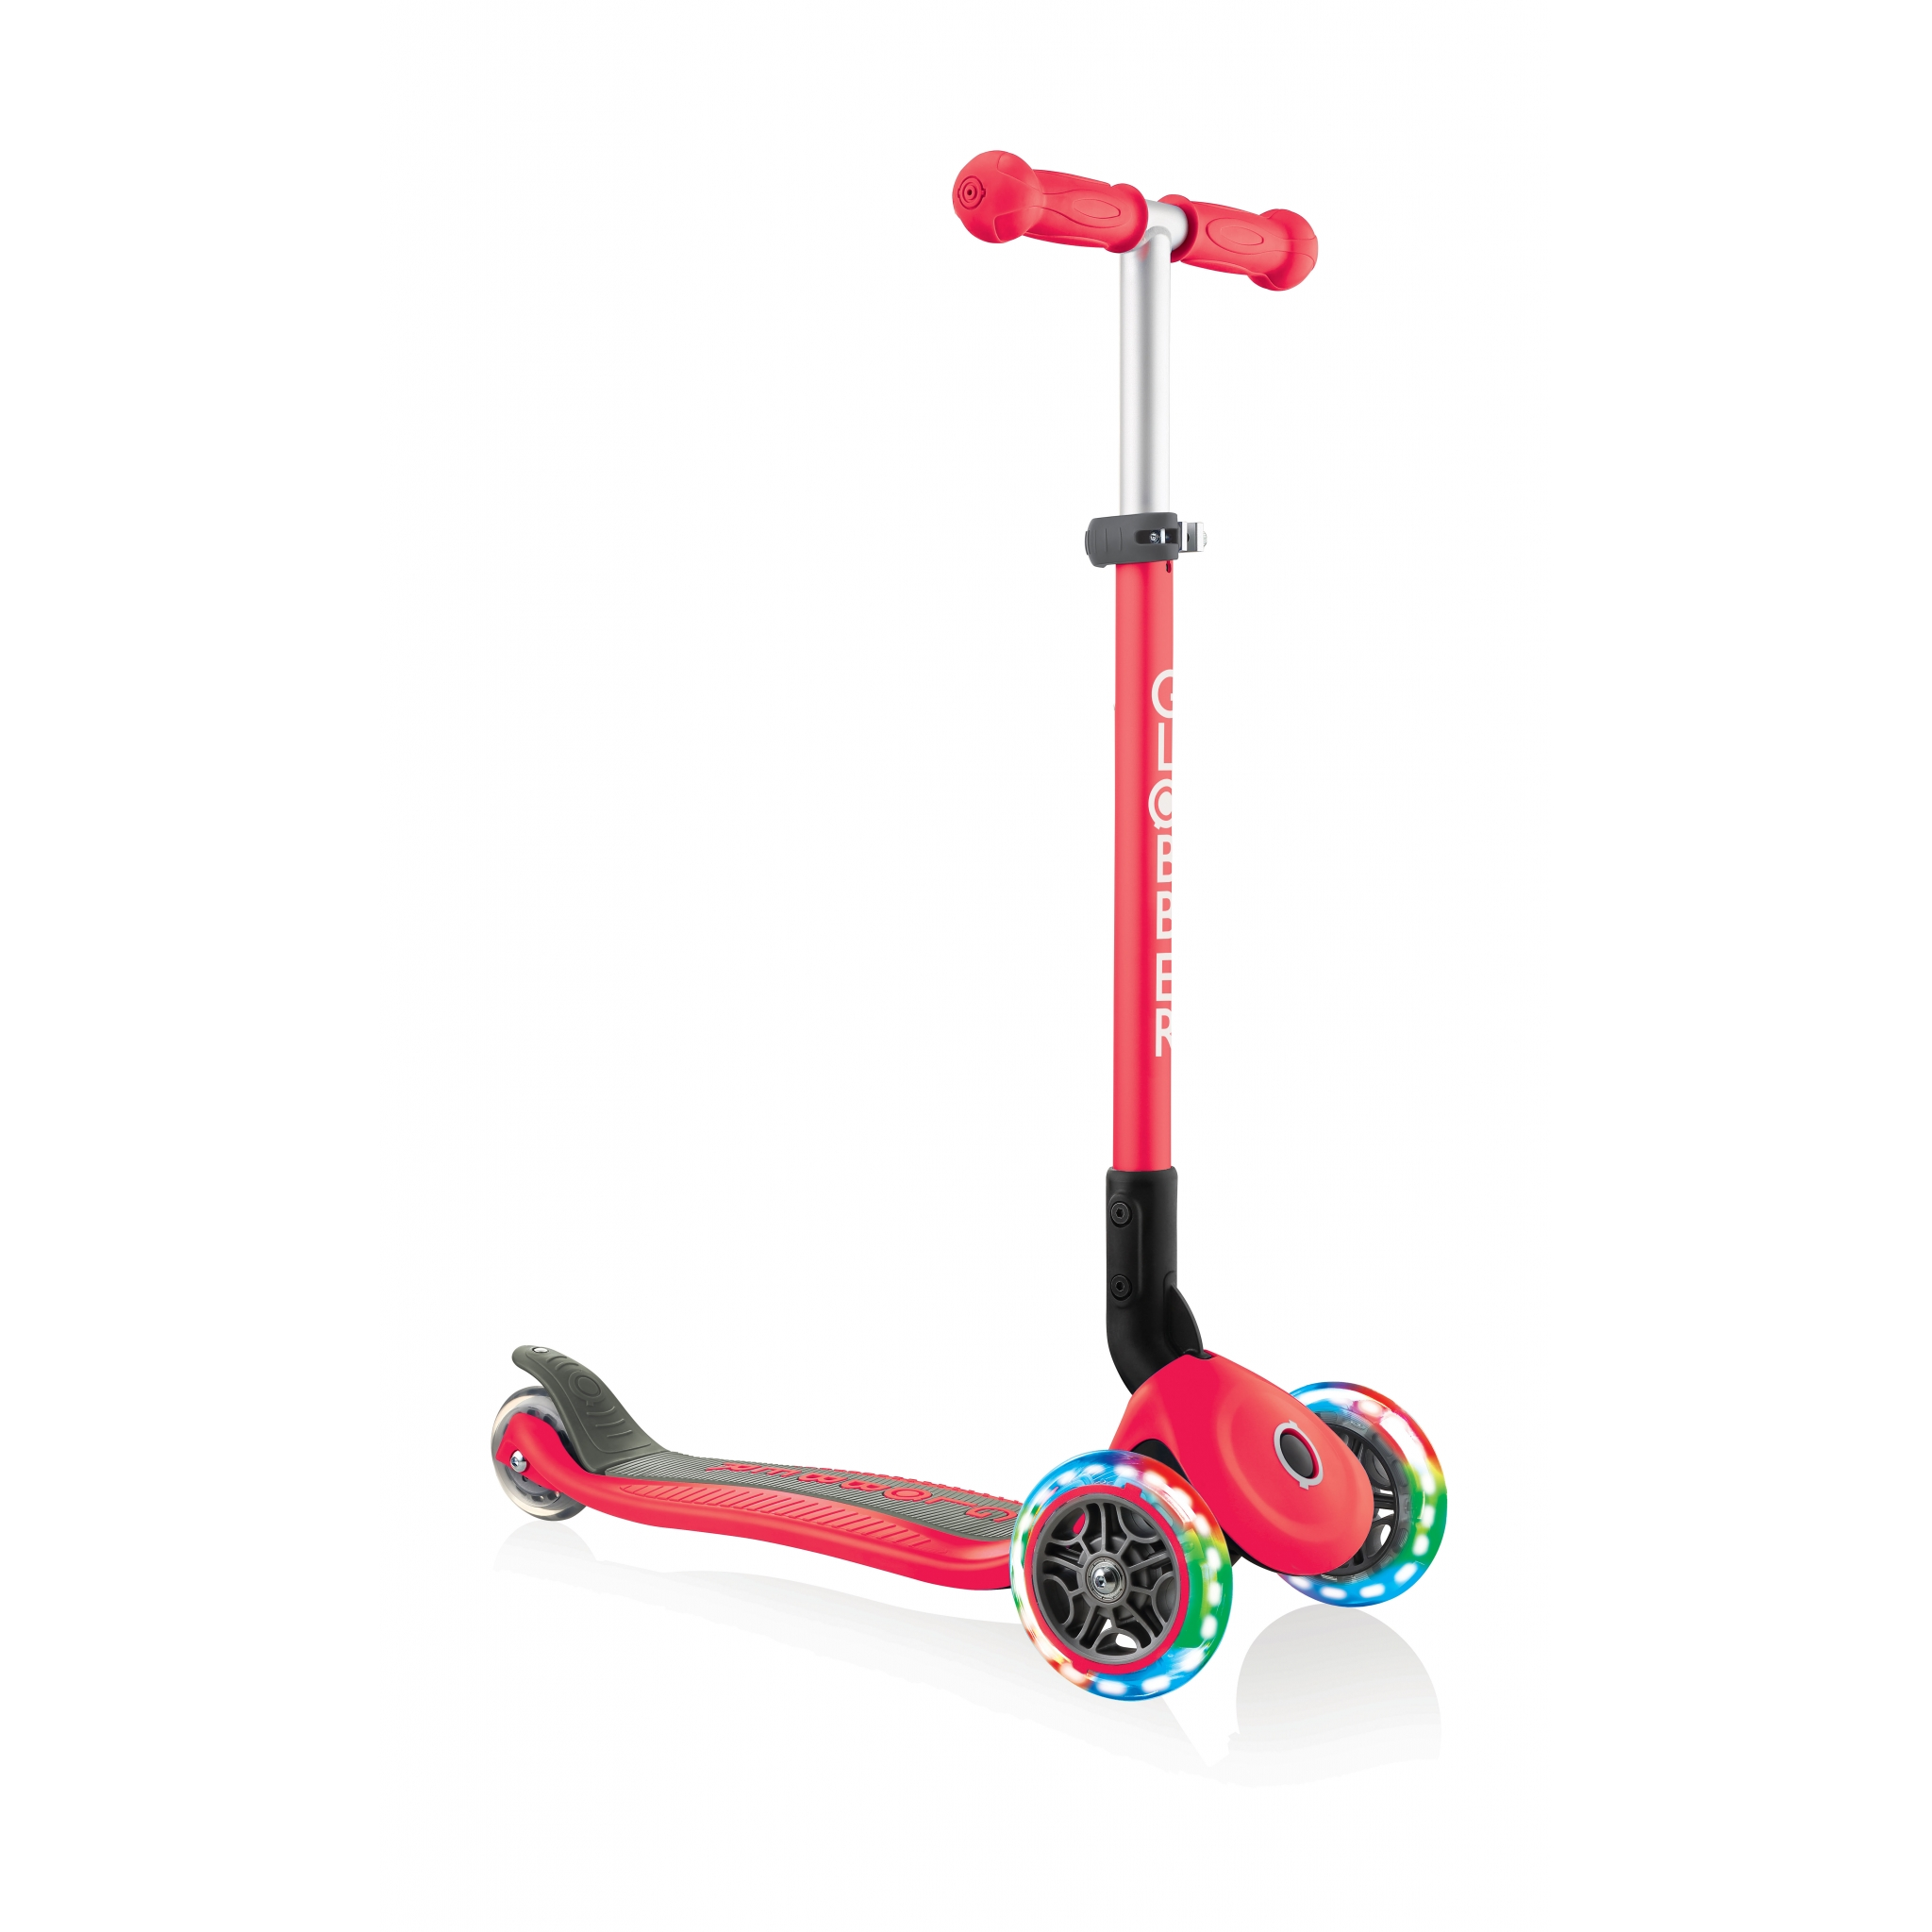 PRIMO-FOLDABLE-LIGHTS-3-wheel-foldable-scooter-light-up-scooter-for-kids-new-red 4